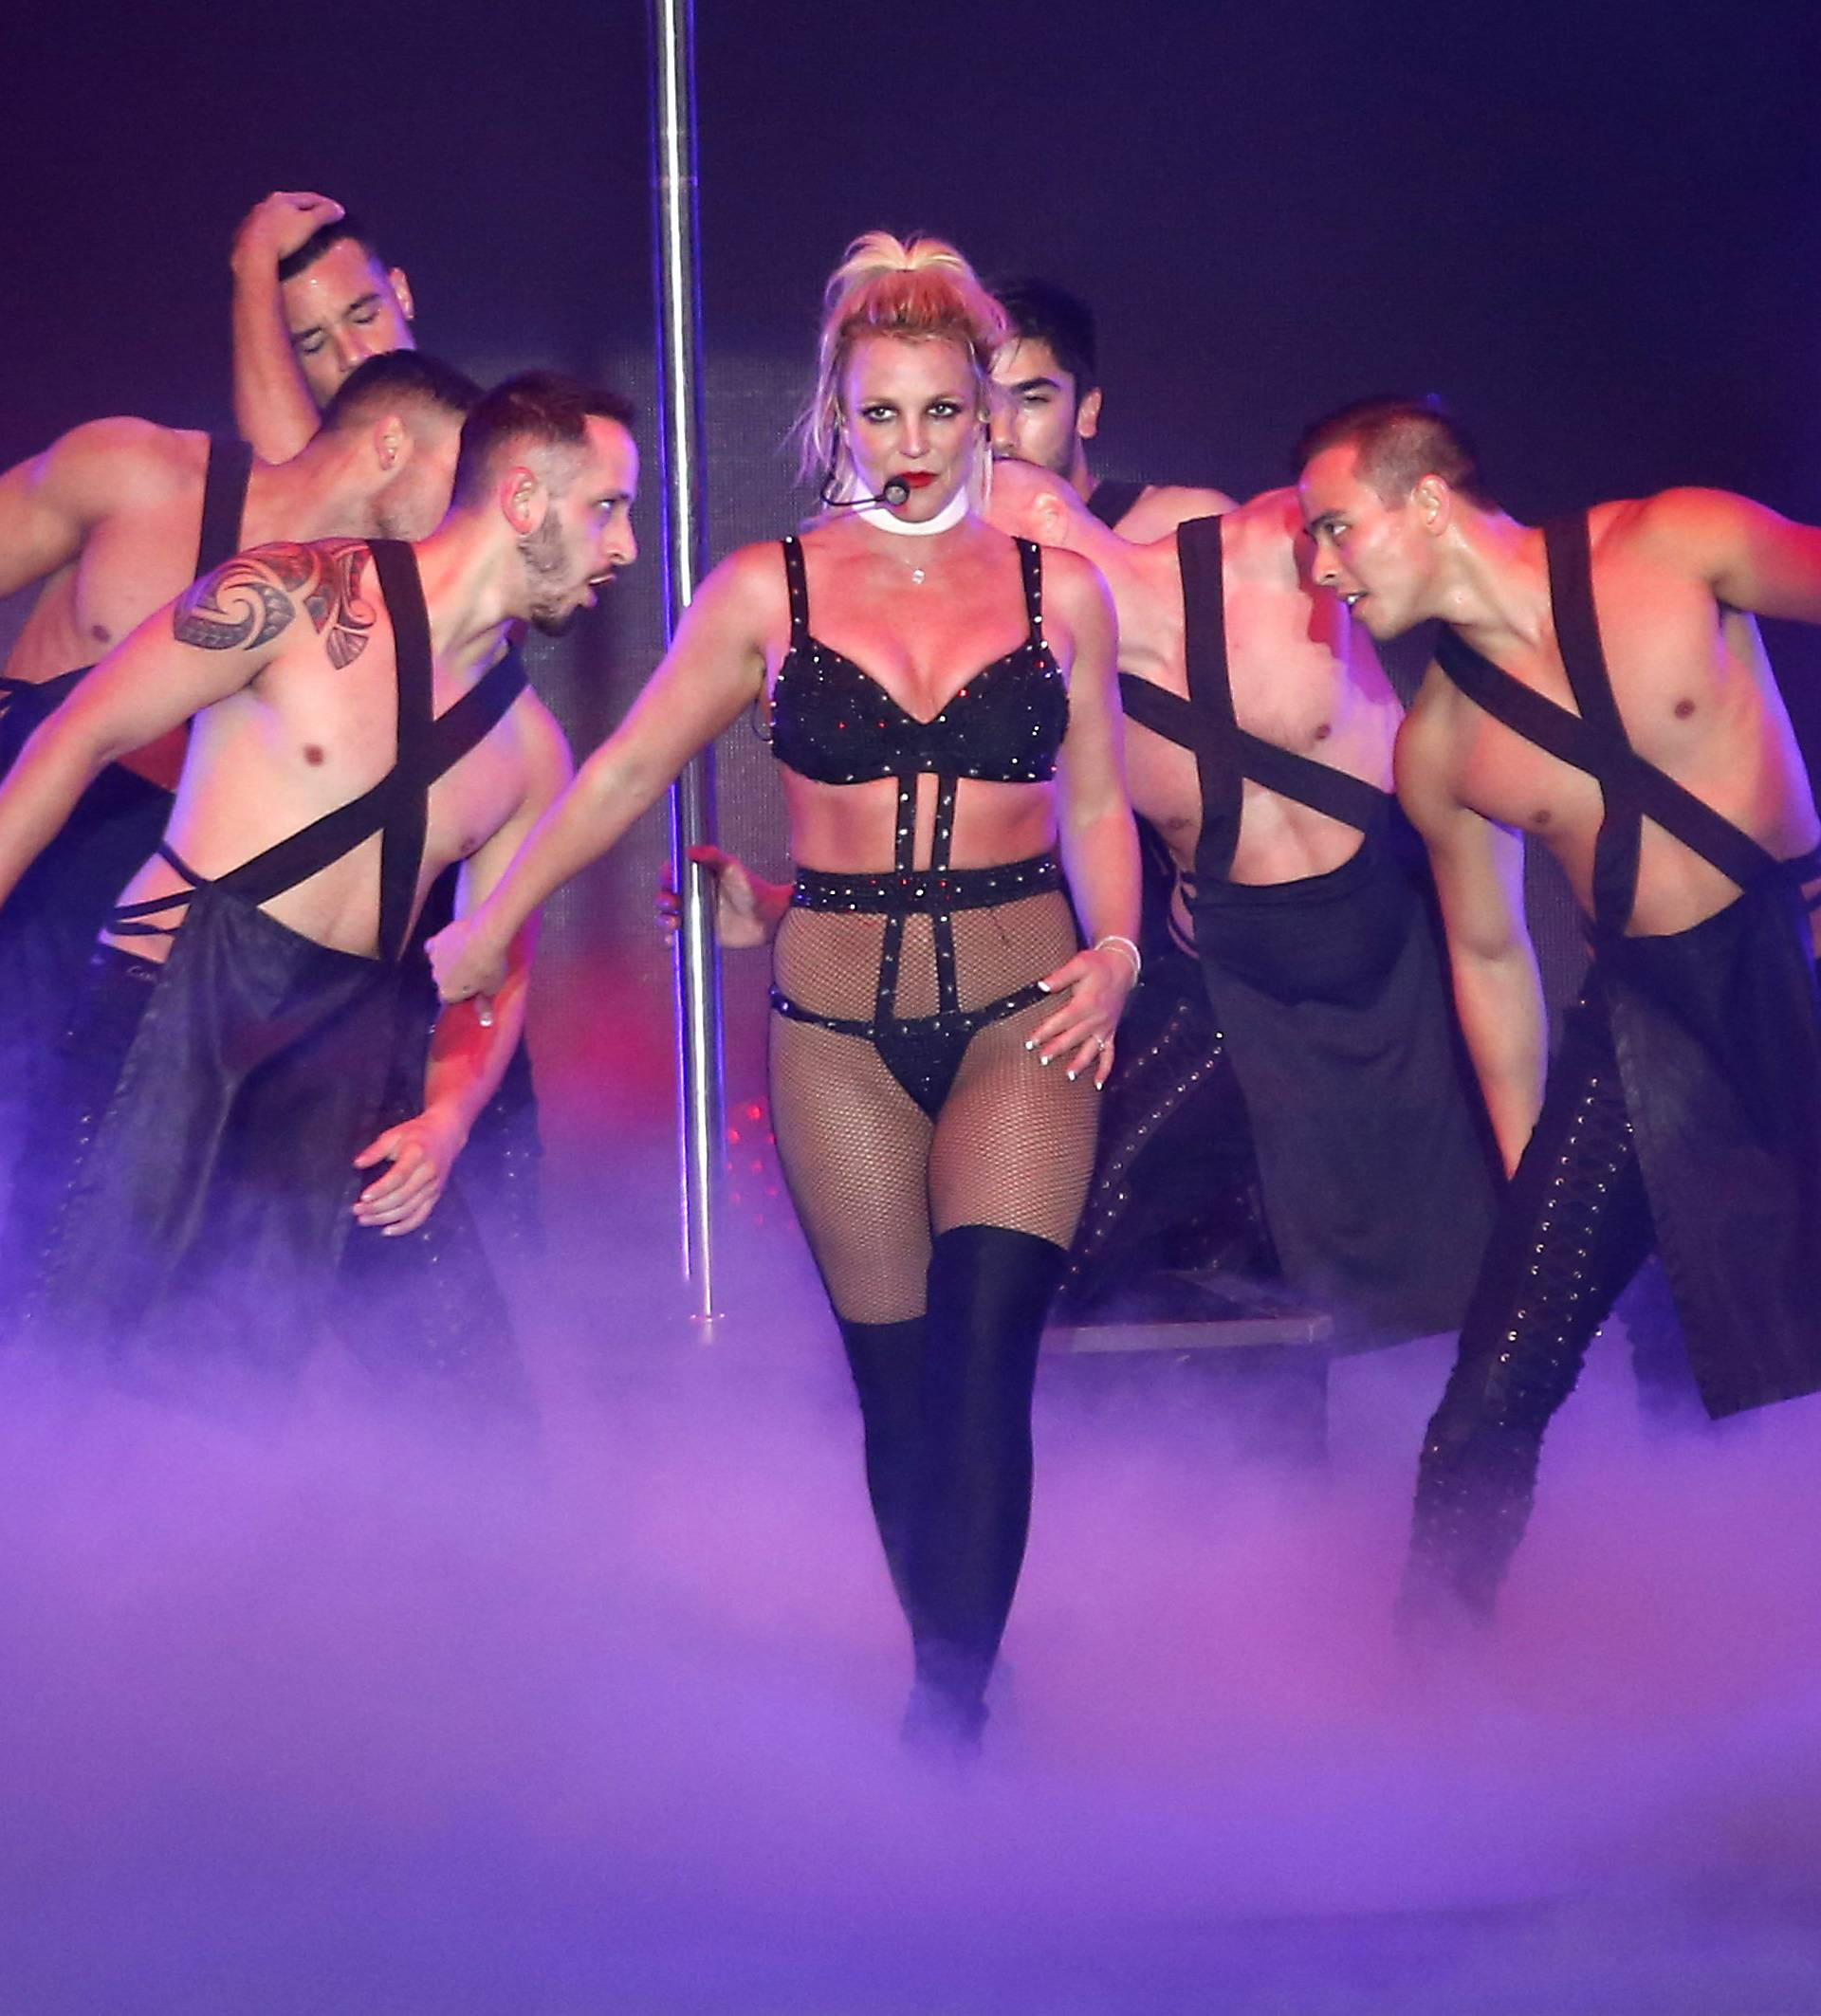 Britney Spears In Concert At Circuit Of America For Formula 1 GP In Austin